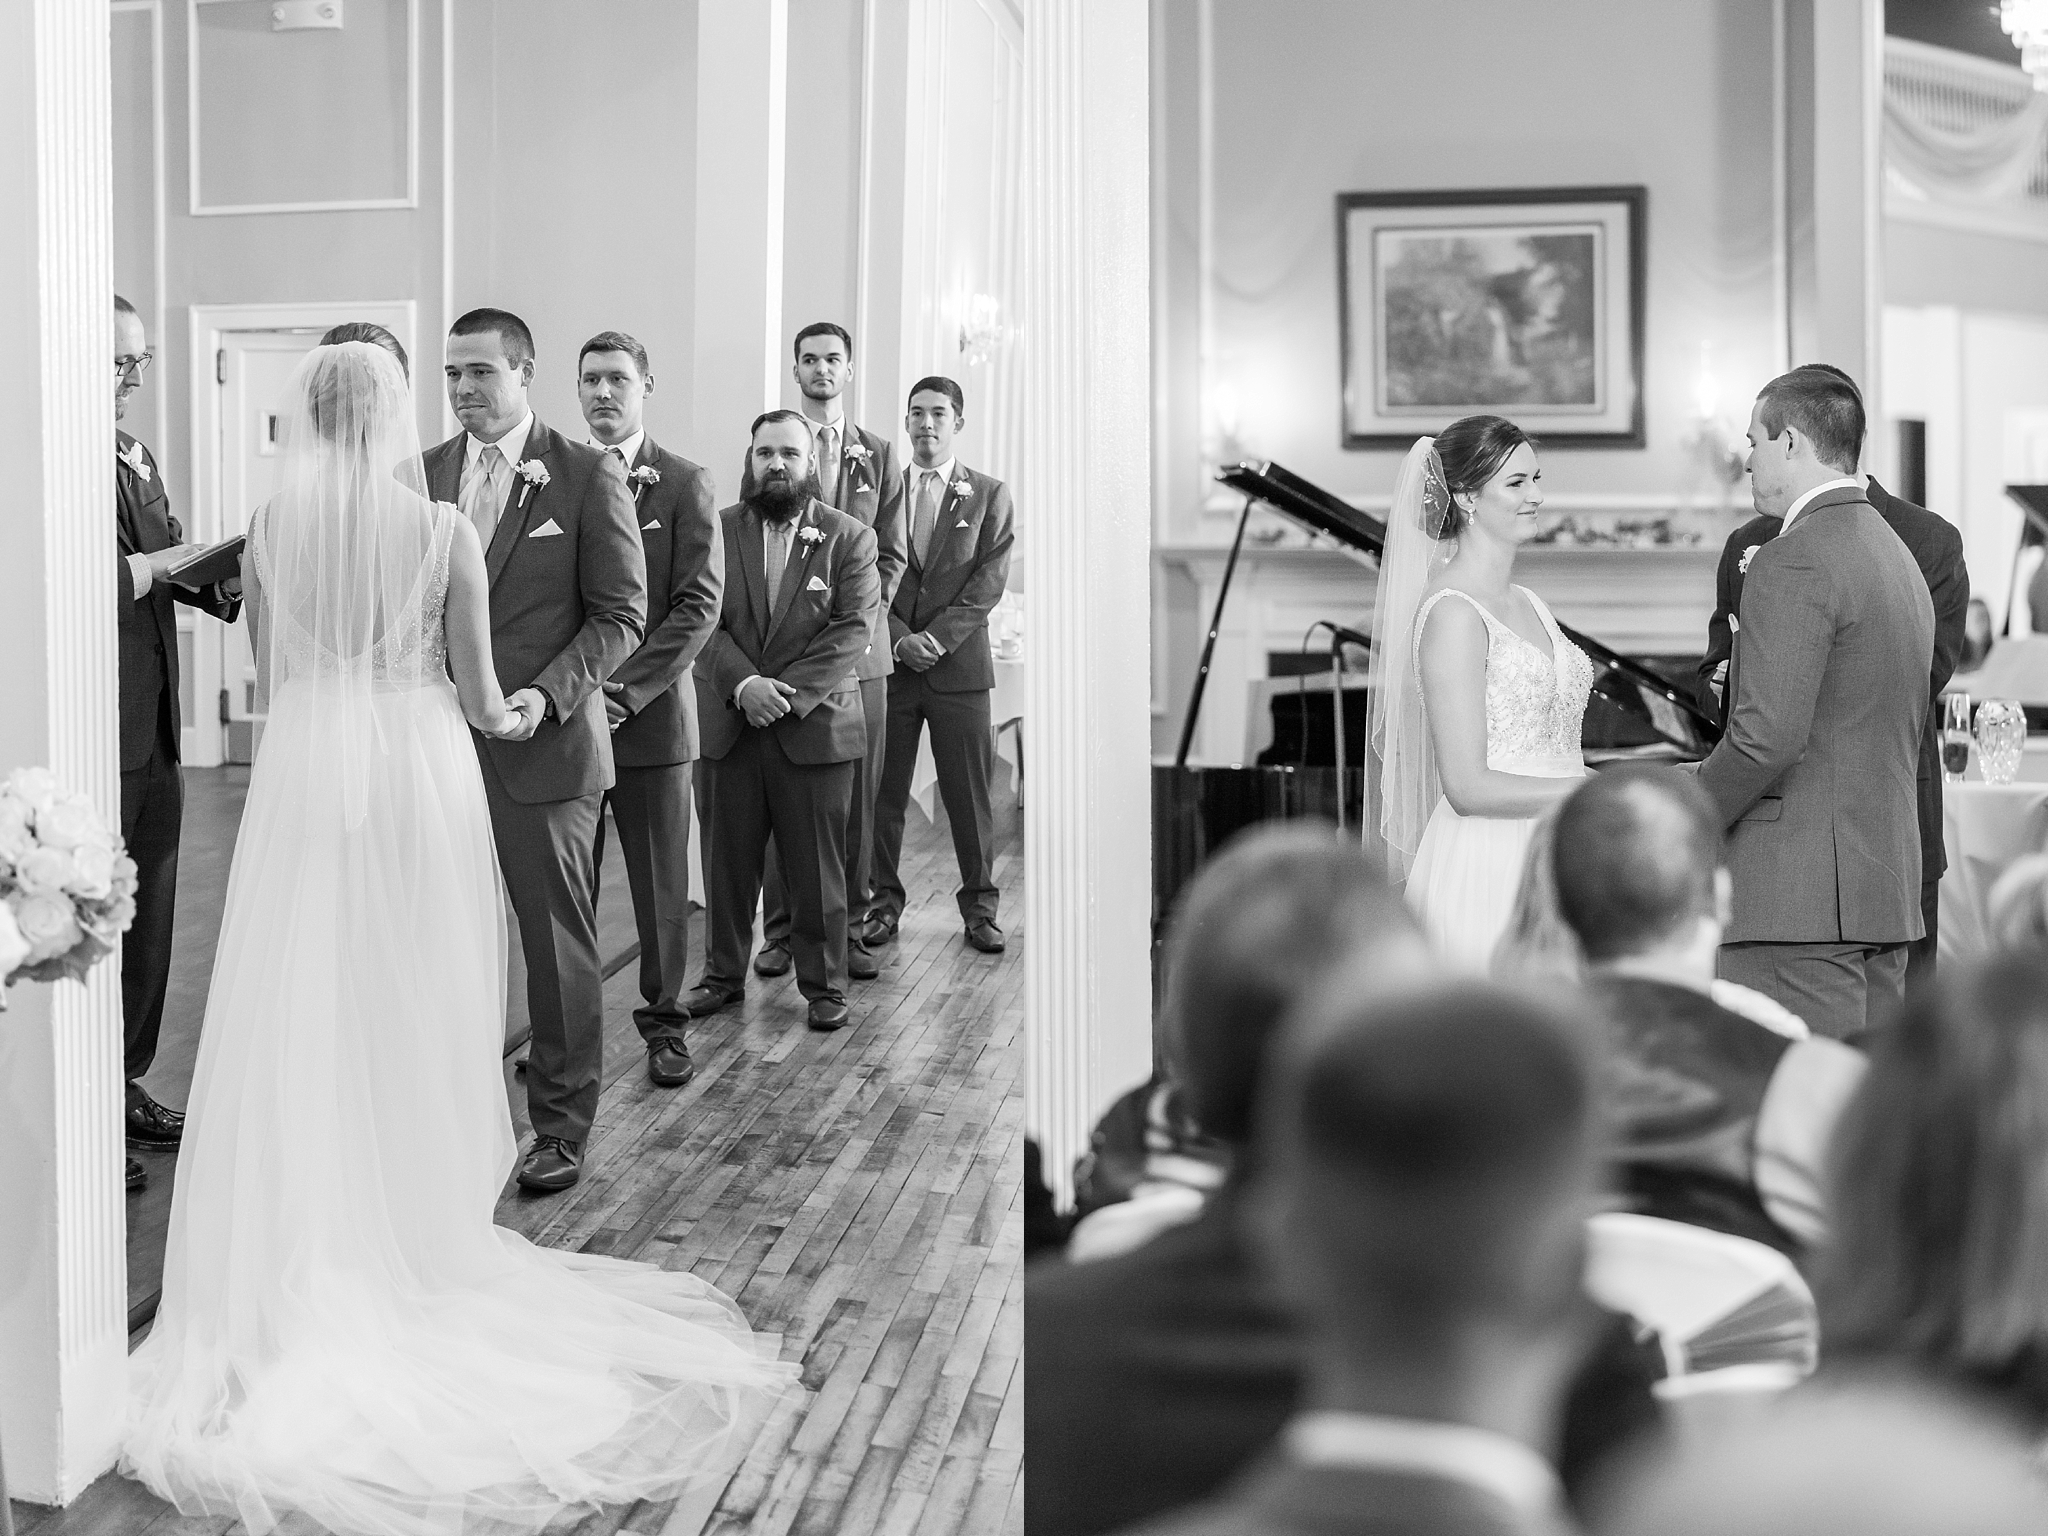 classic-intimate-fun-wedding-photos-at-the-meeting-house-grand-ballroom-in-plymouth-michigan-by-courtney-carolyn-photography_0027.jpg